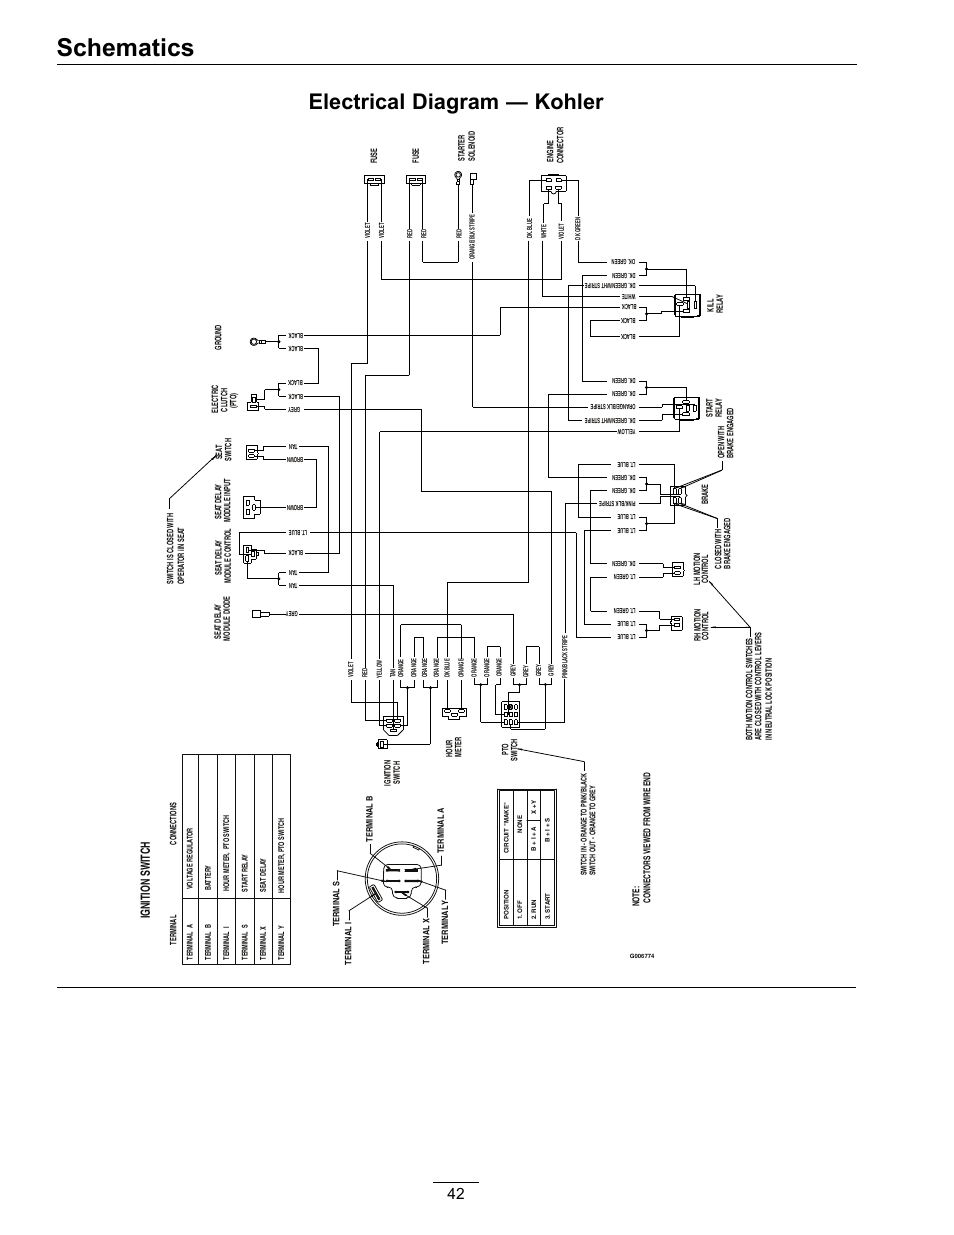 Schematics, Electrical diagram — kohler, Ignition switch | Exmark Lazer Z  HP 565 User Manual | Page 42 / 48